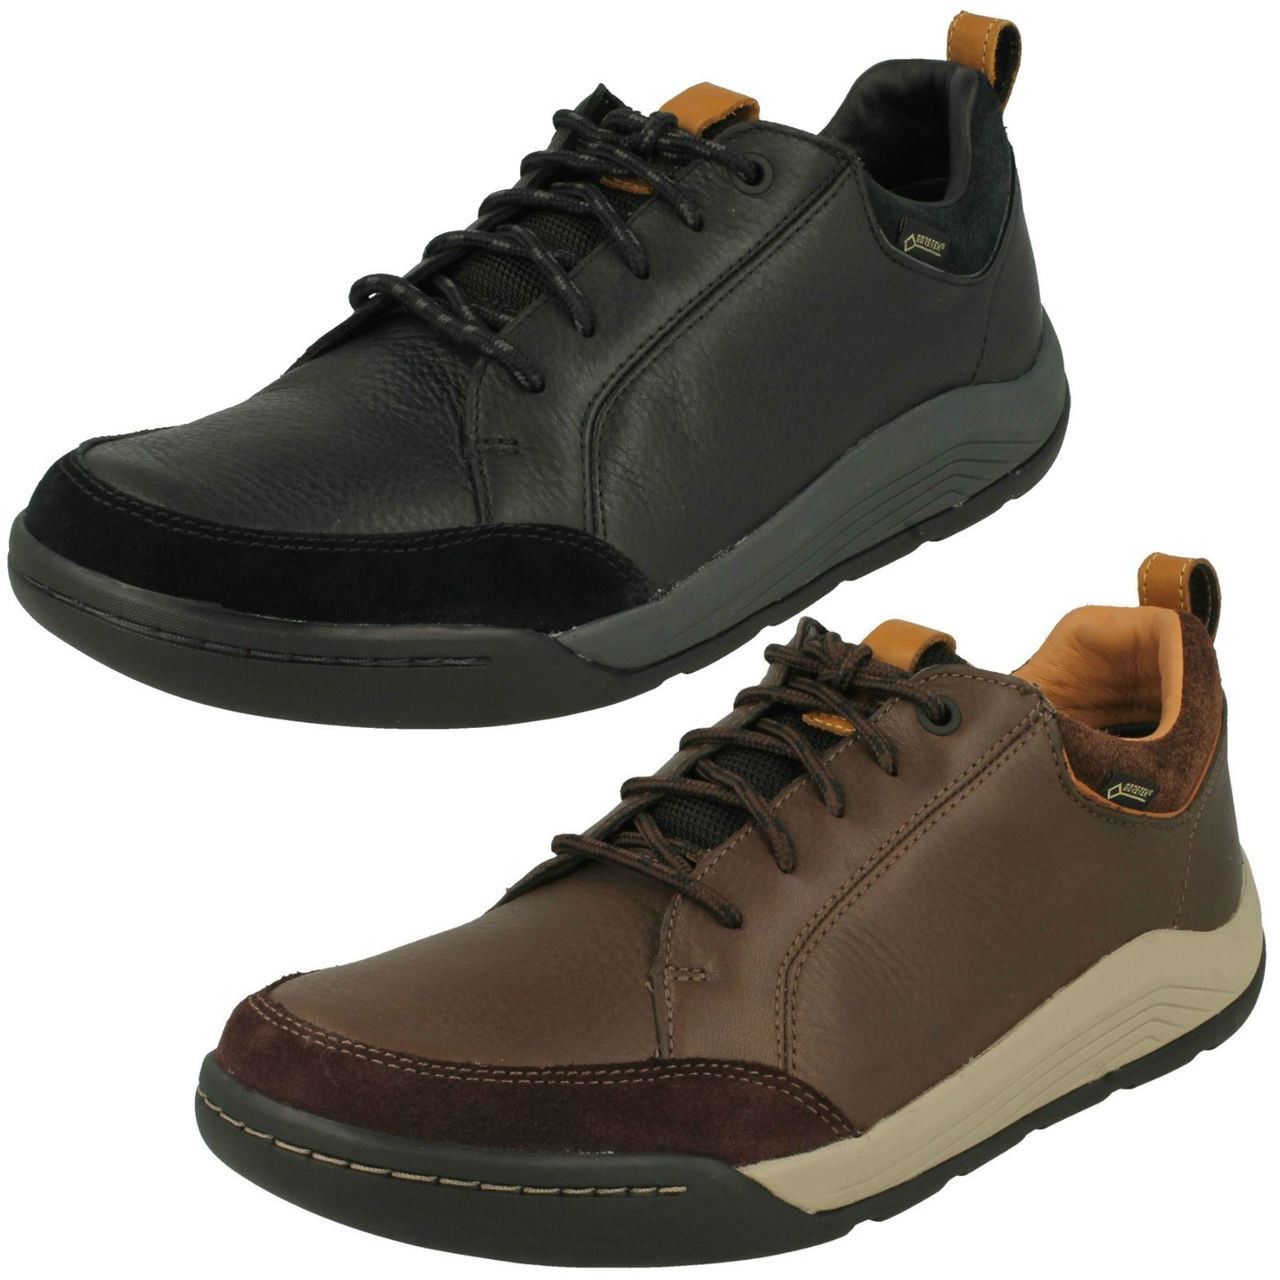 Mens Clarks Casual Gore-Tex Shoes